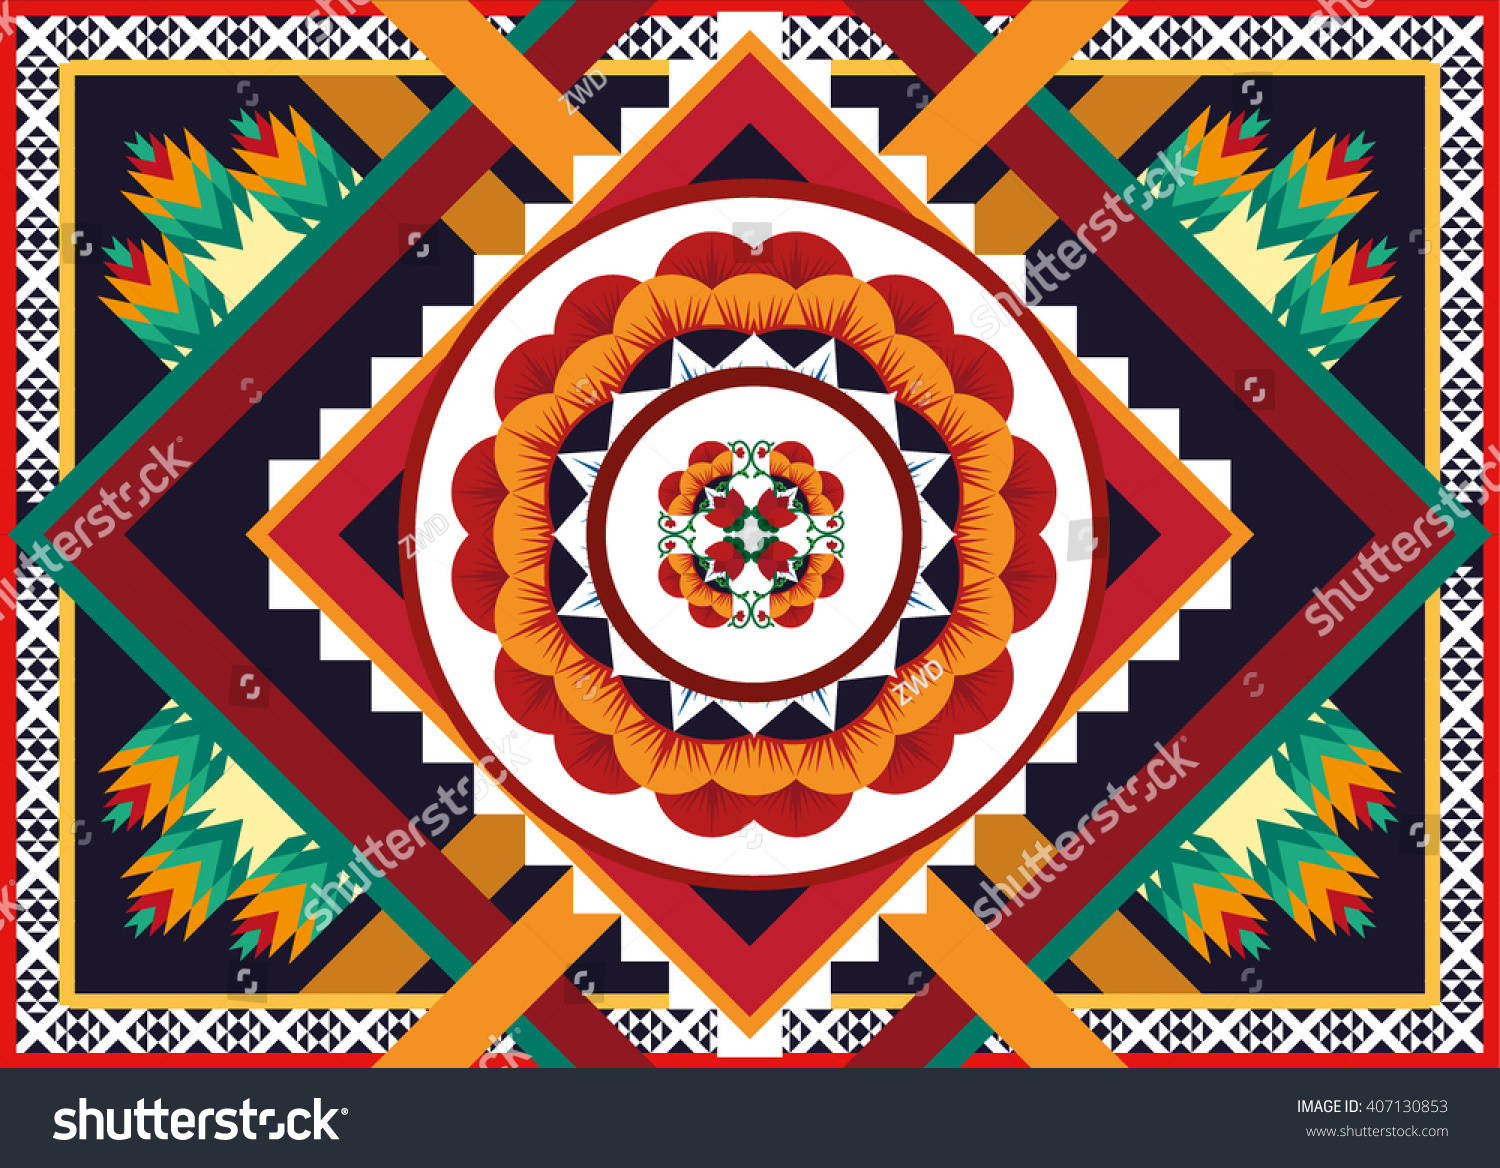 Geometric ethnic oriental flower pattern traditional Design for background carpet wallpaper clothing wrapping Batik fabric Vector illustration.embroidery style